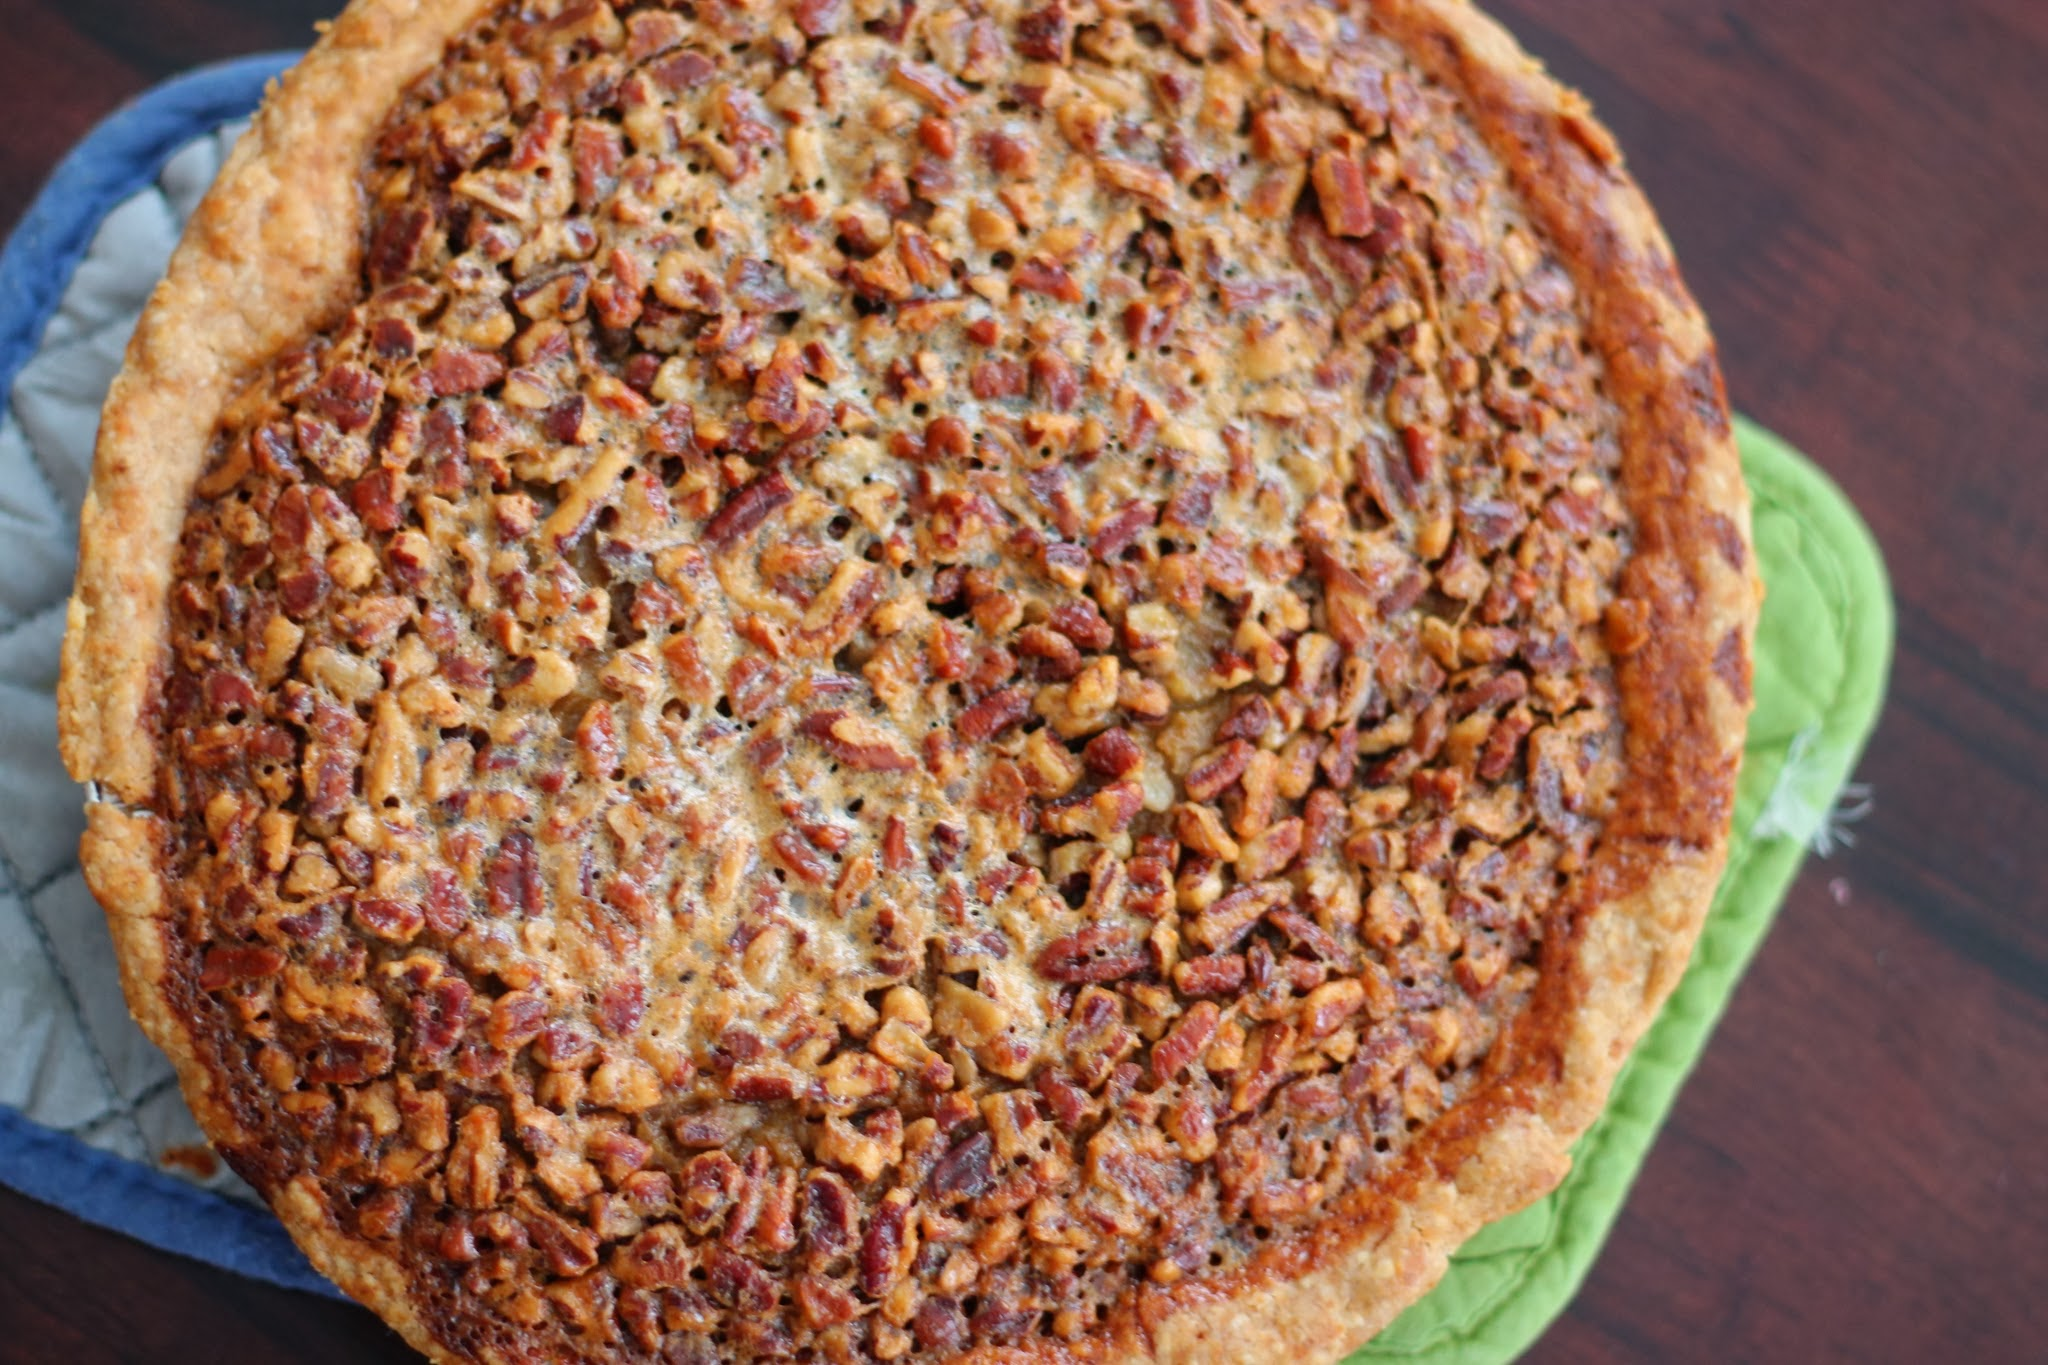 Karo Syrup Pecan Pie Recipe